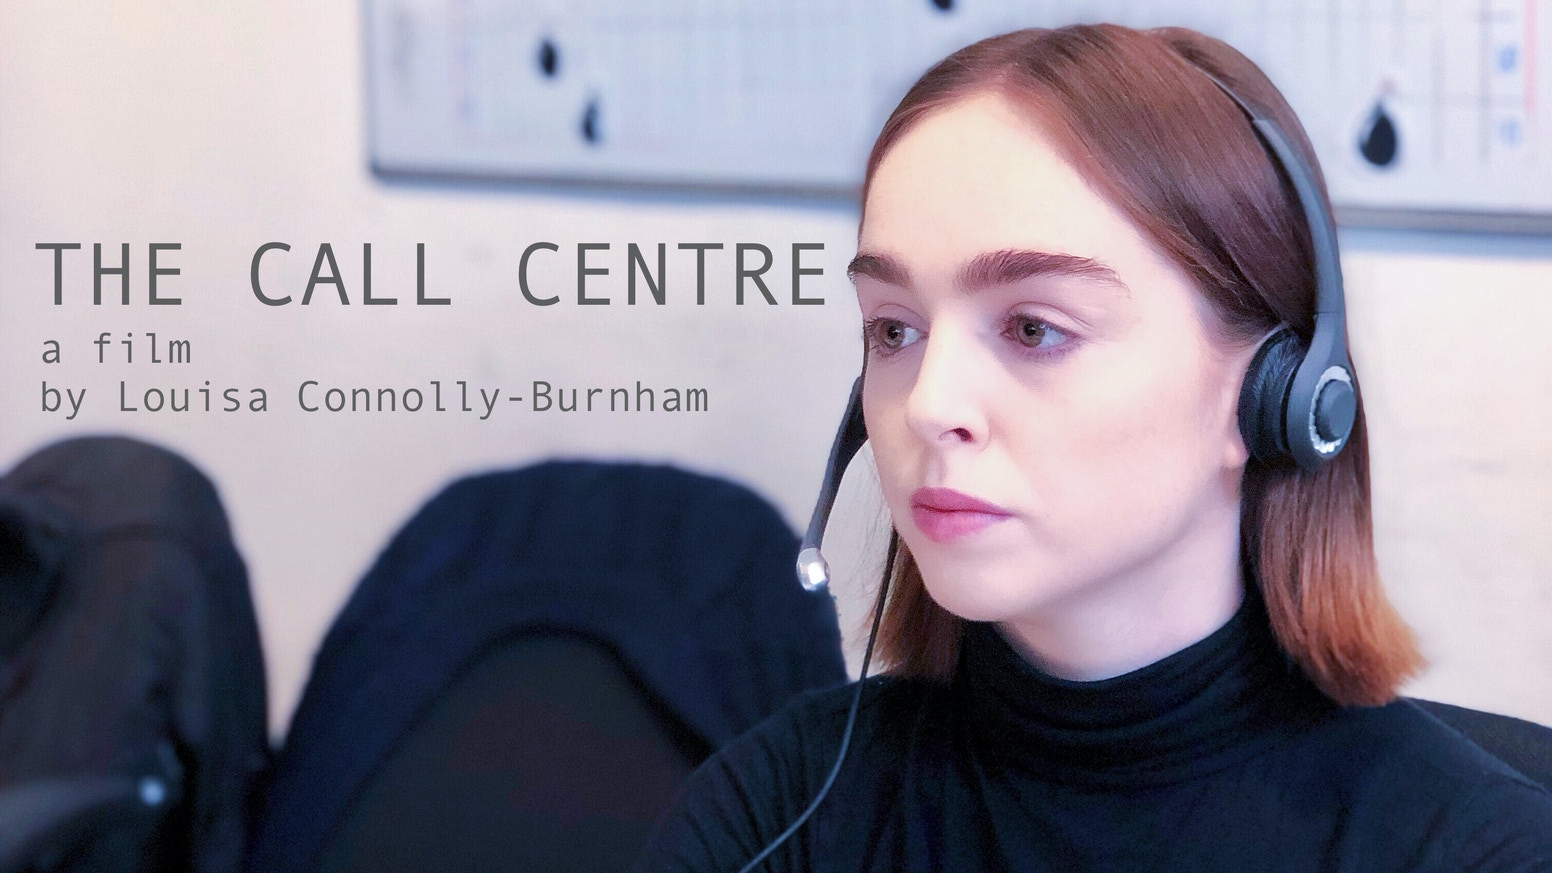 THE CALL CENTRE - A Short Film by Louisa Connolly-Burnham — Kickstarter